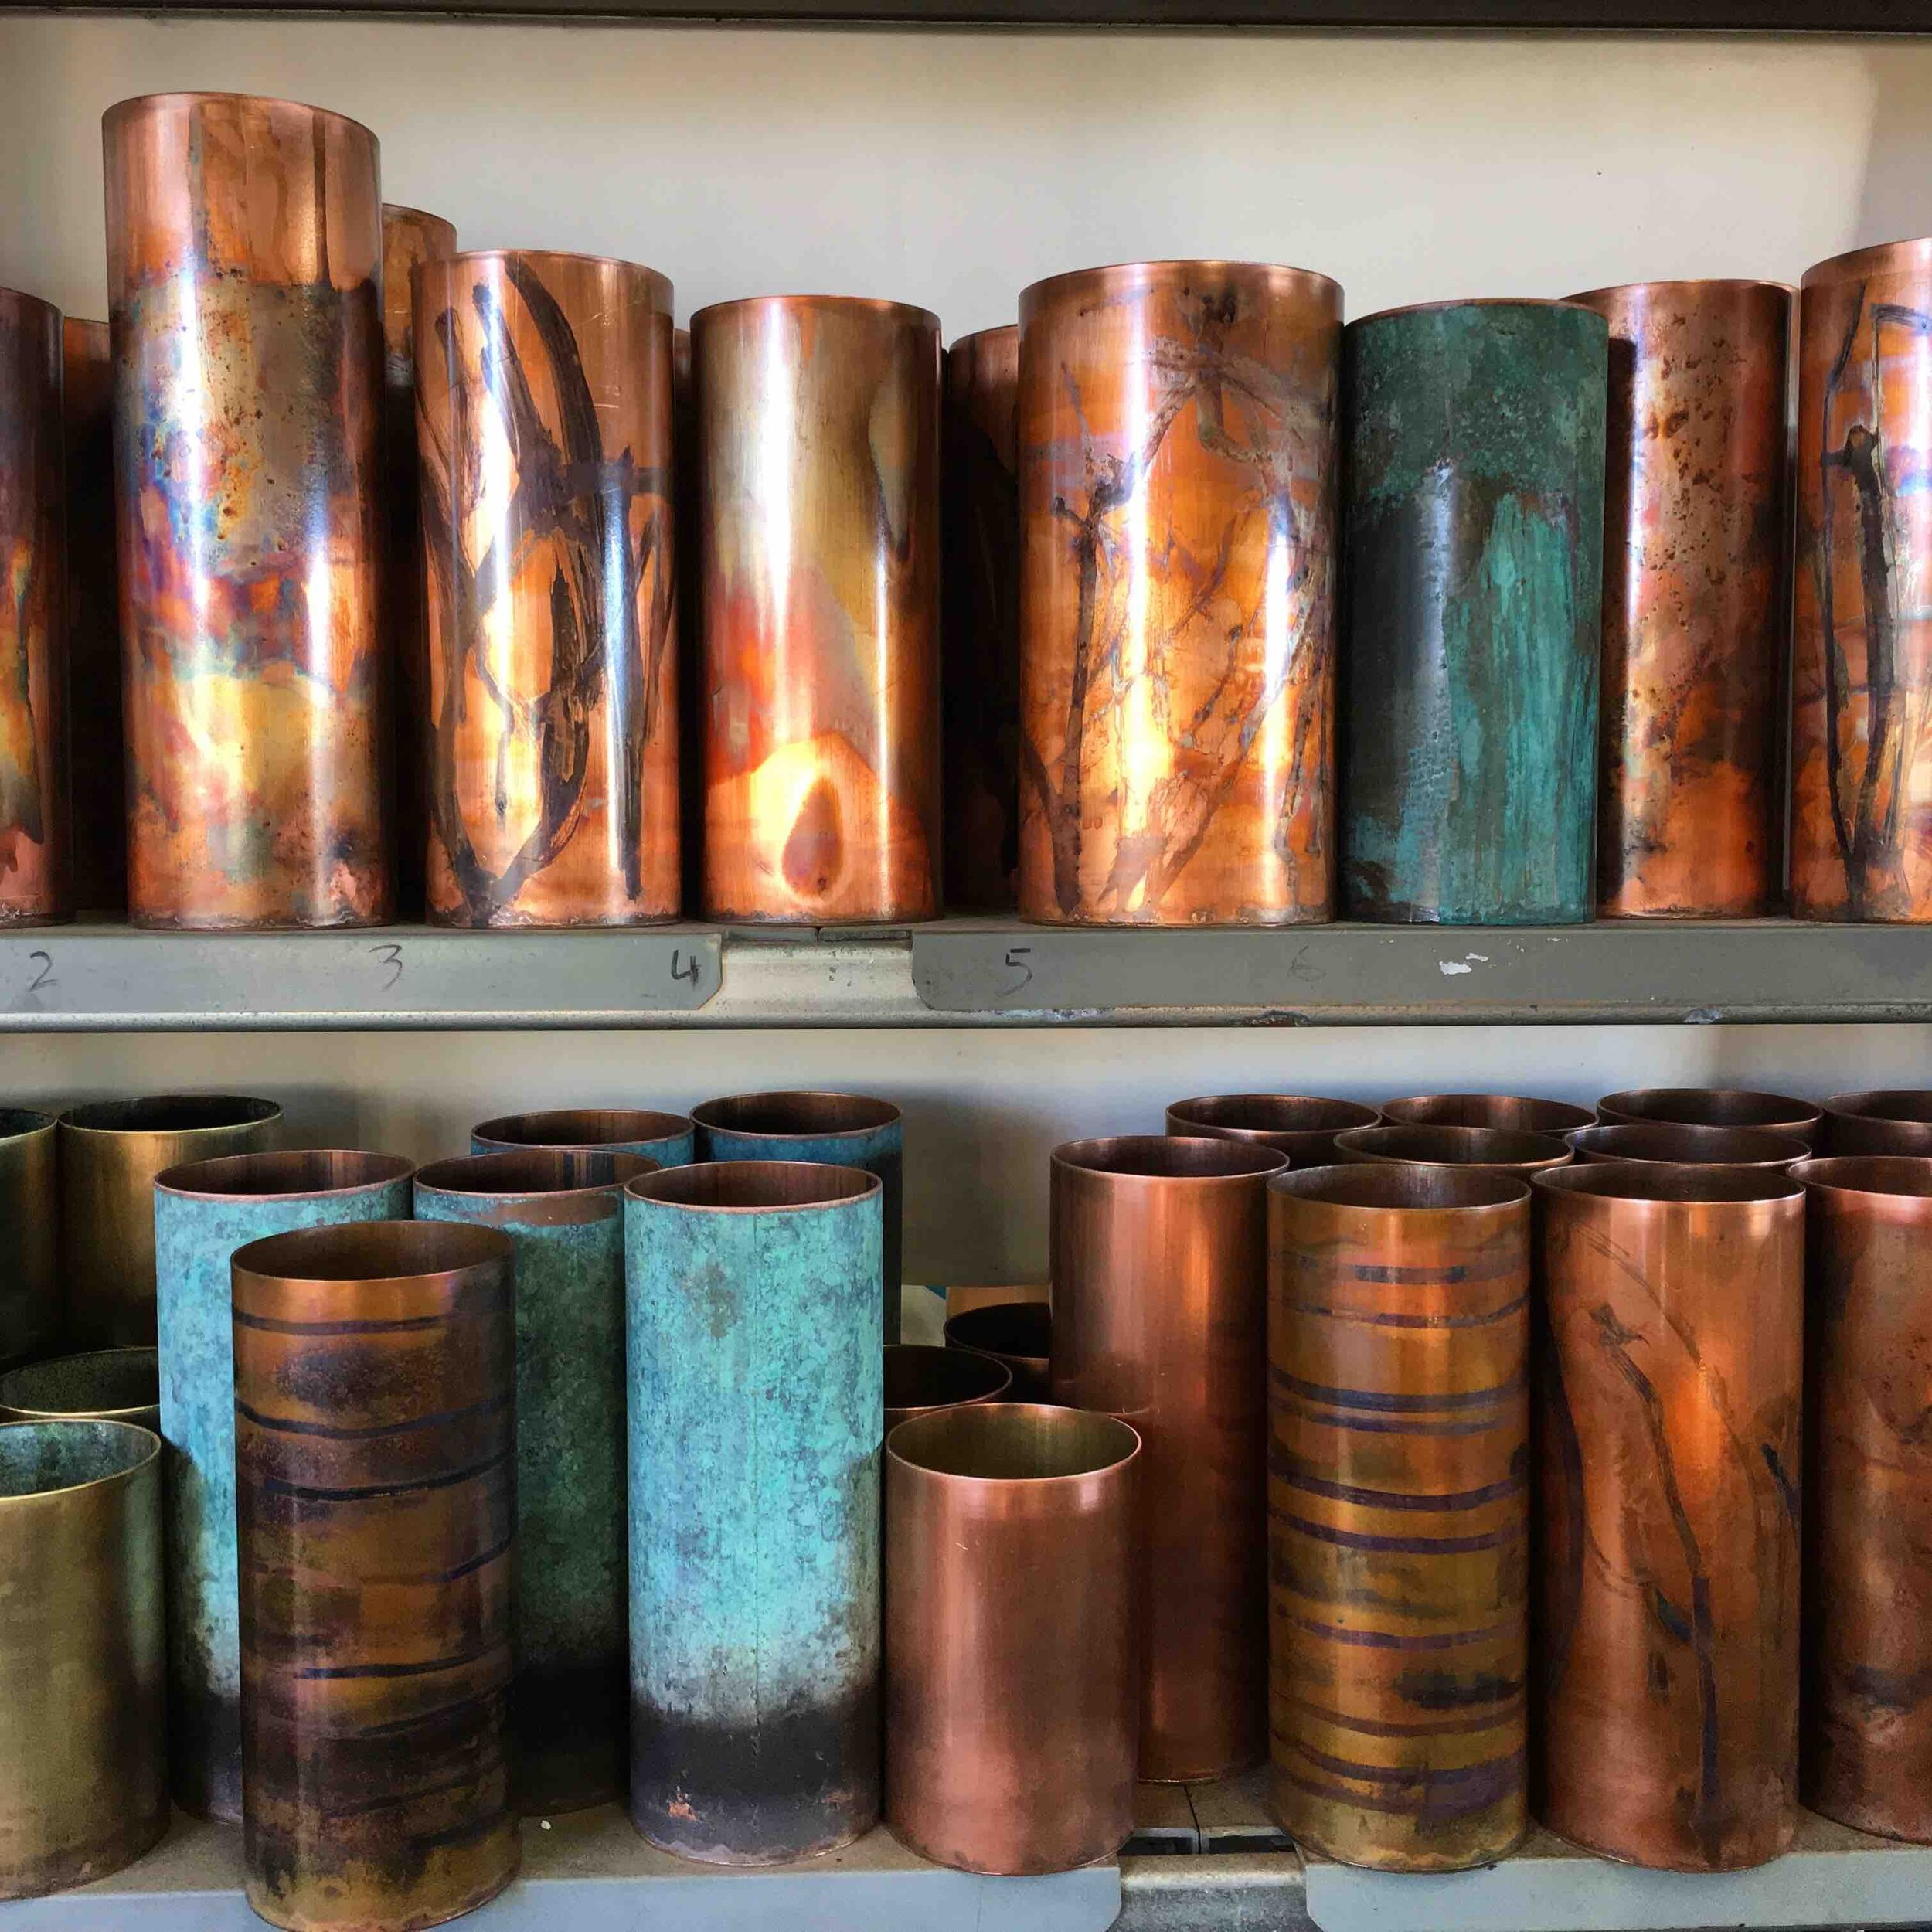 GOST welcomes David from Greybox Designs - We are pleased to welcome David Suckling to the GOST stable. I first spied his brilliant polished copper vases at China Clay in Clovelly. Owner Cecilia recommended him highly and when I realised he was just down the road (well over the highway and tucked into rural NSW) off I went to check out his studio. I certainly got studio envy with the size (way bigger than our garage, studio and gallery combined!) and his handcrafted tools. His vases are available to see in person.